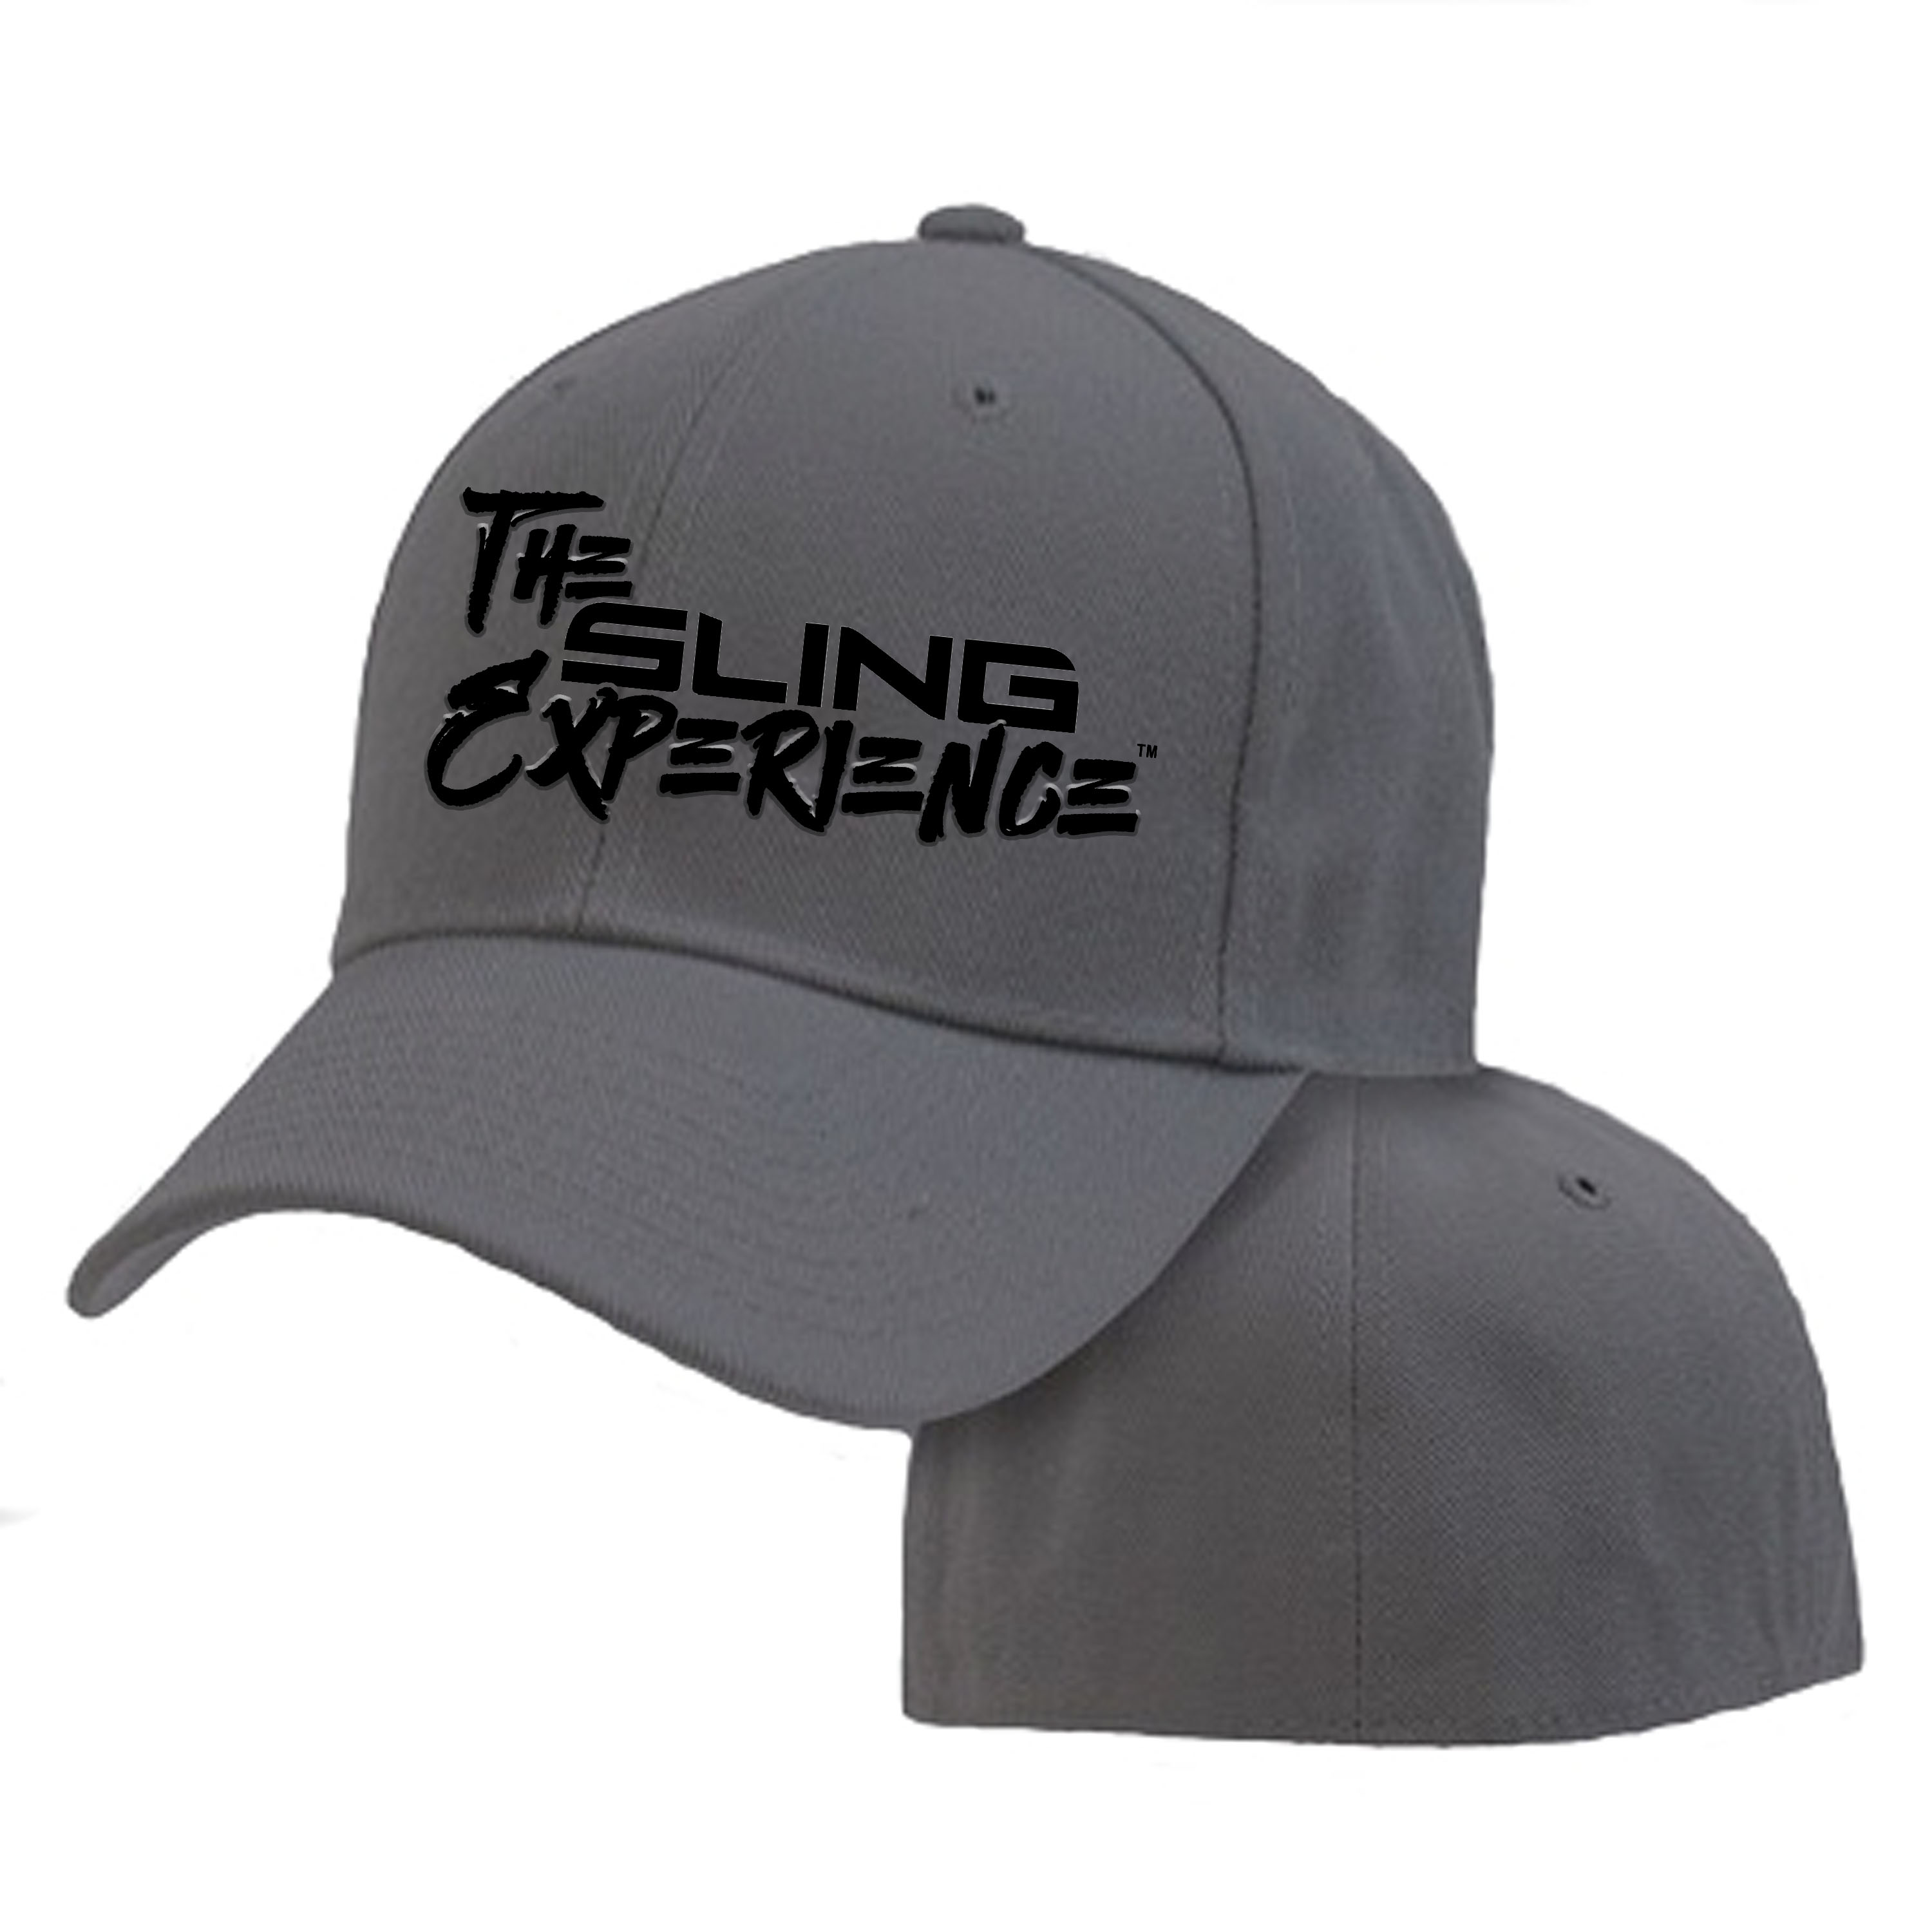 The Sling Experience Hat